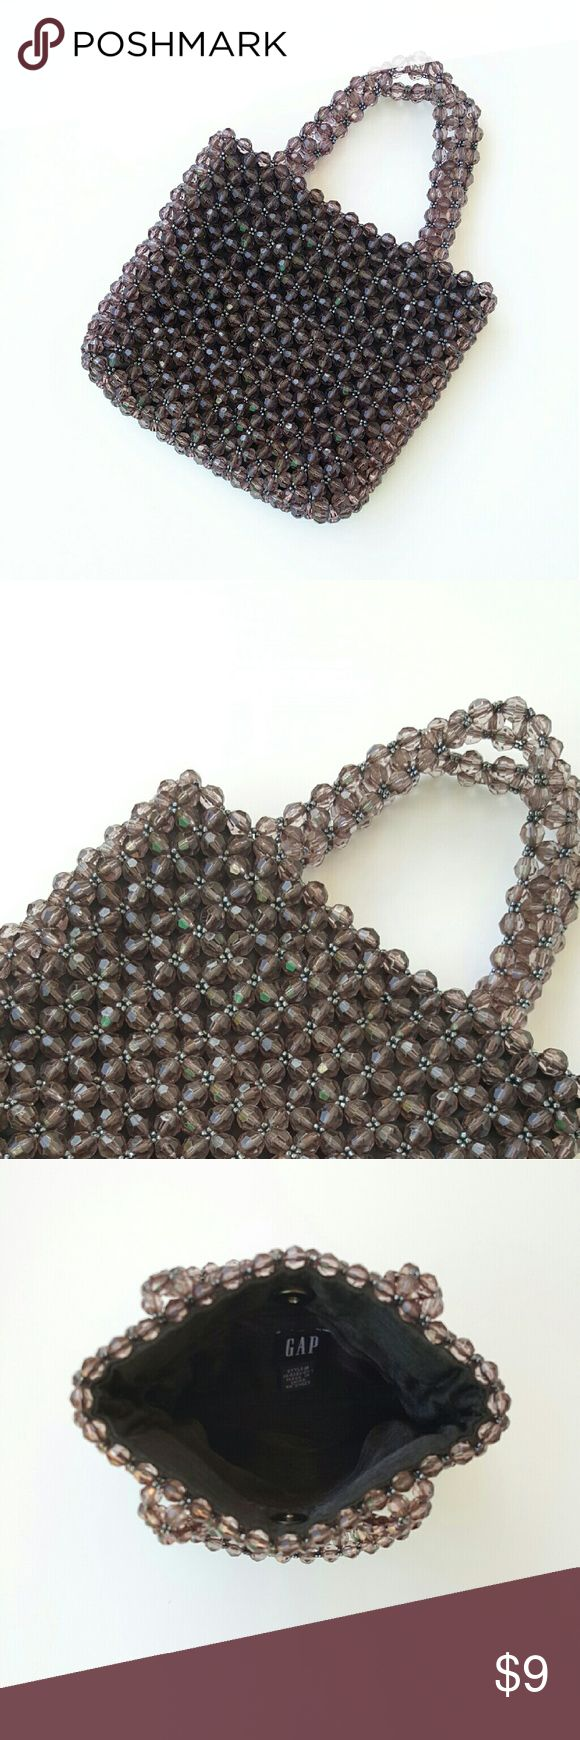 "Girl's Night Out Mini Beaded Bag For any special occasion or a pair of jeans this little mini bag is perfect. This bag has a magnet closure and one interior pocket. Lined. Excellent condition. 7?6"";  3"" drop. Smokey dark gray.hi Gap Bags Mini Bags"